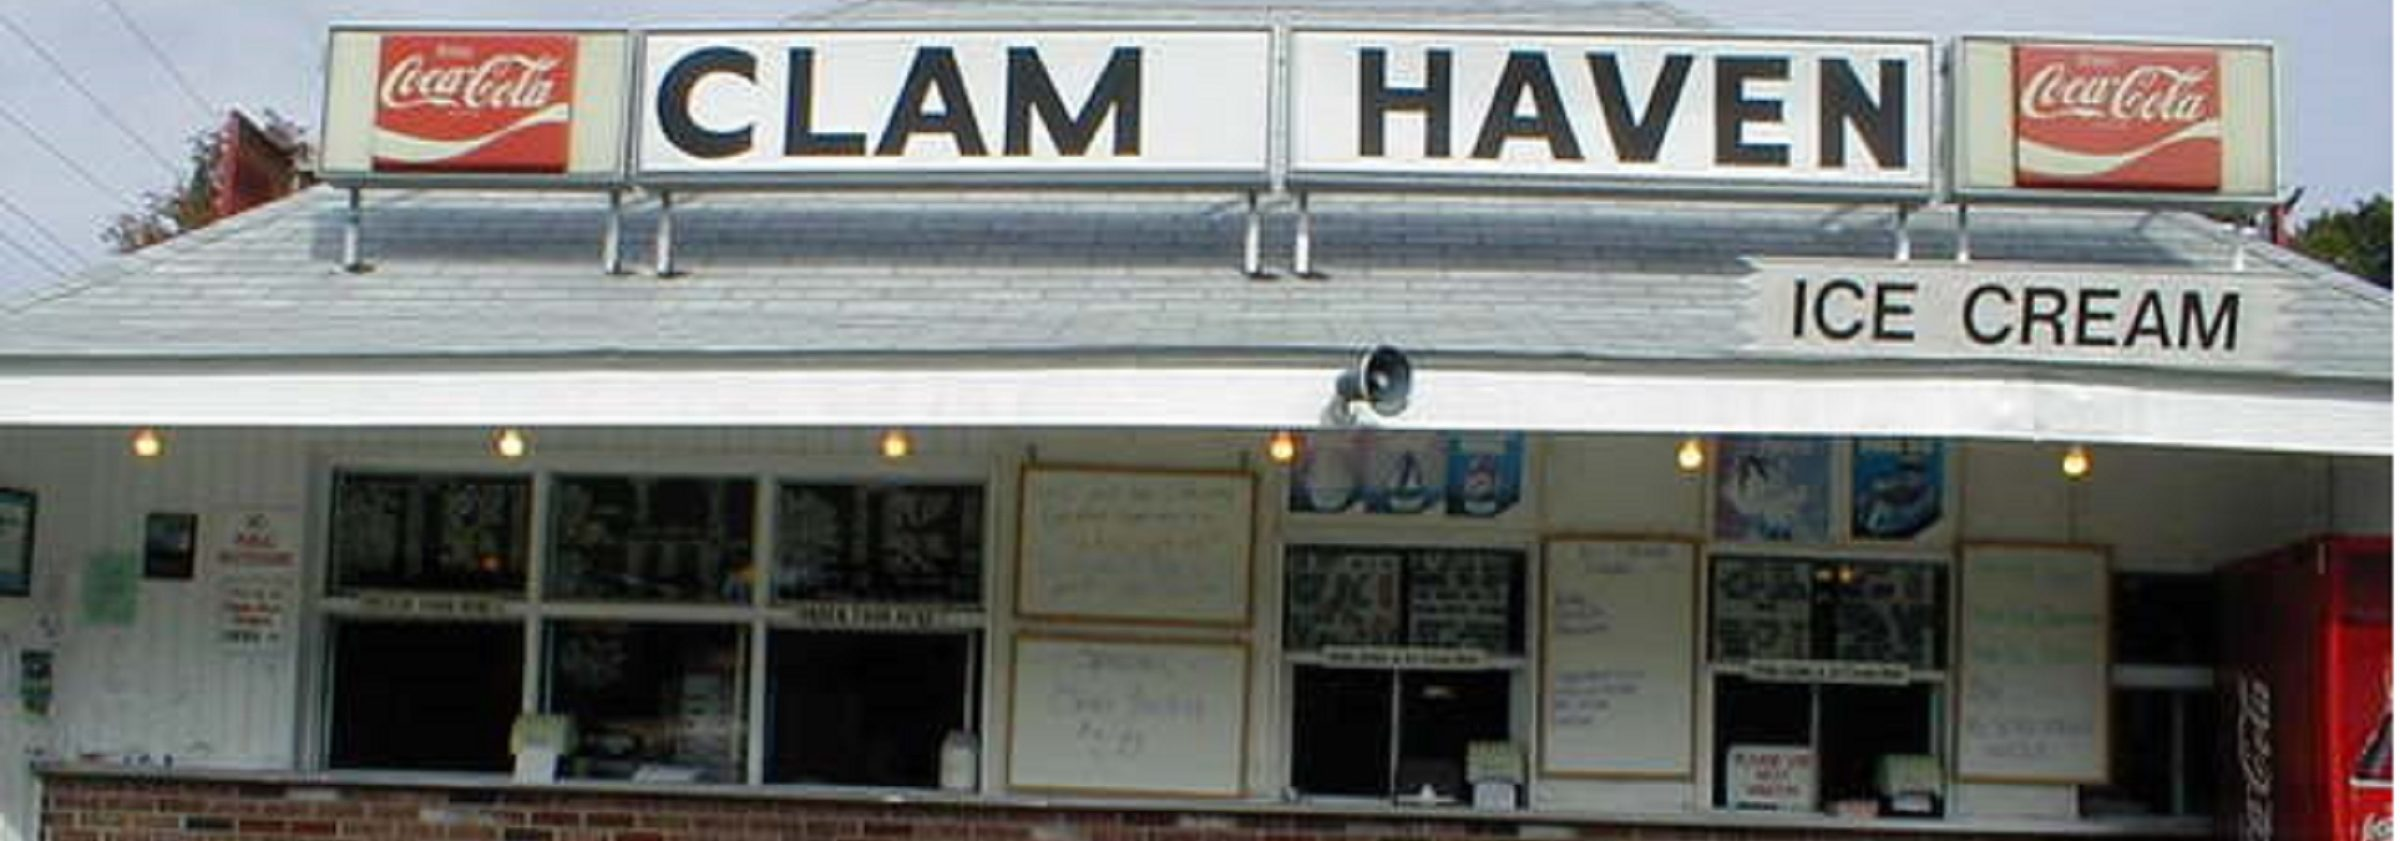 Clam Haven Derry, New Hampshire